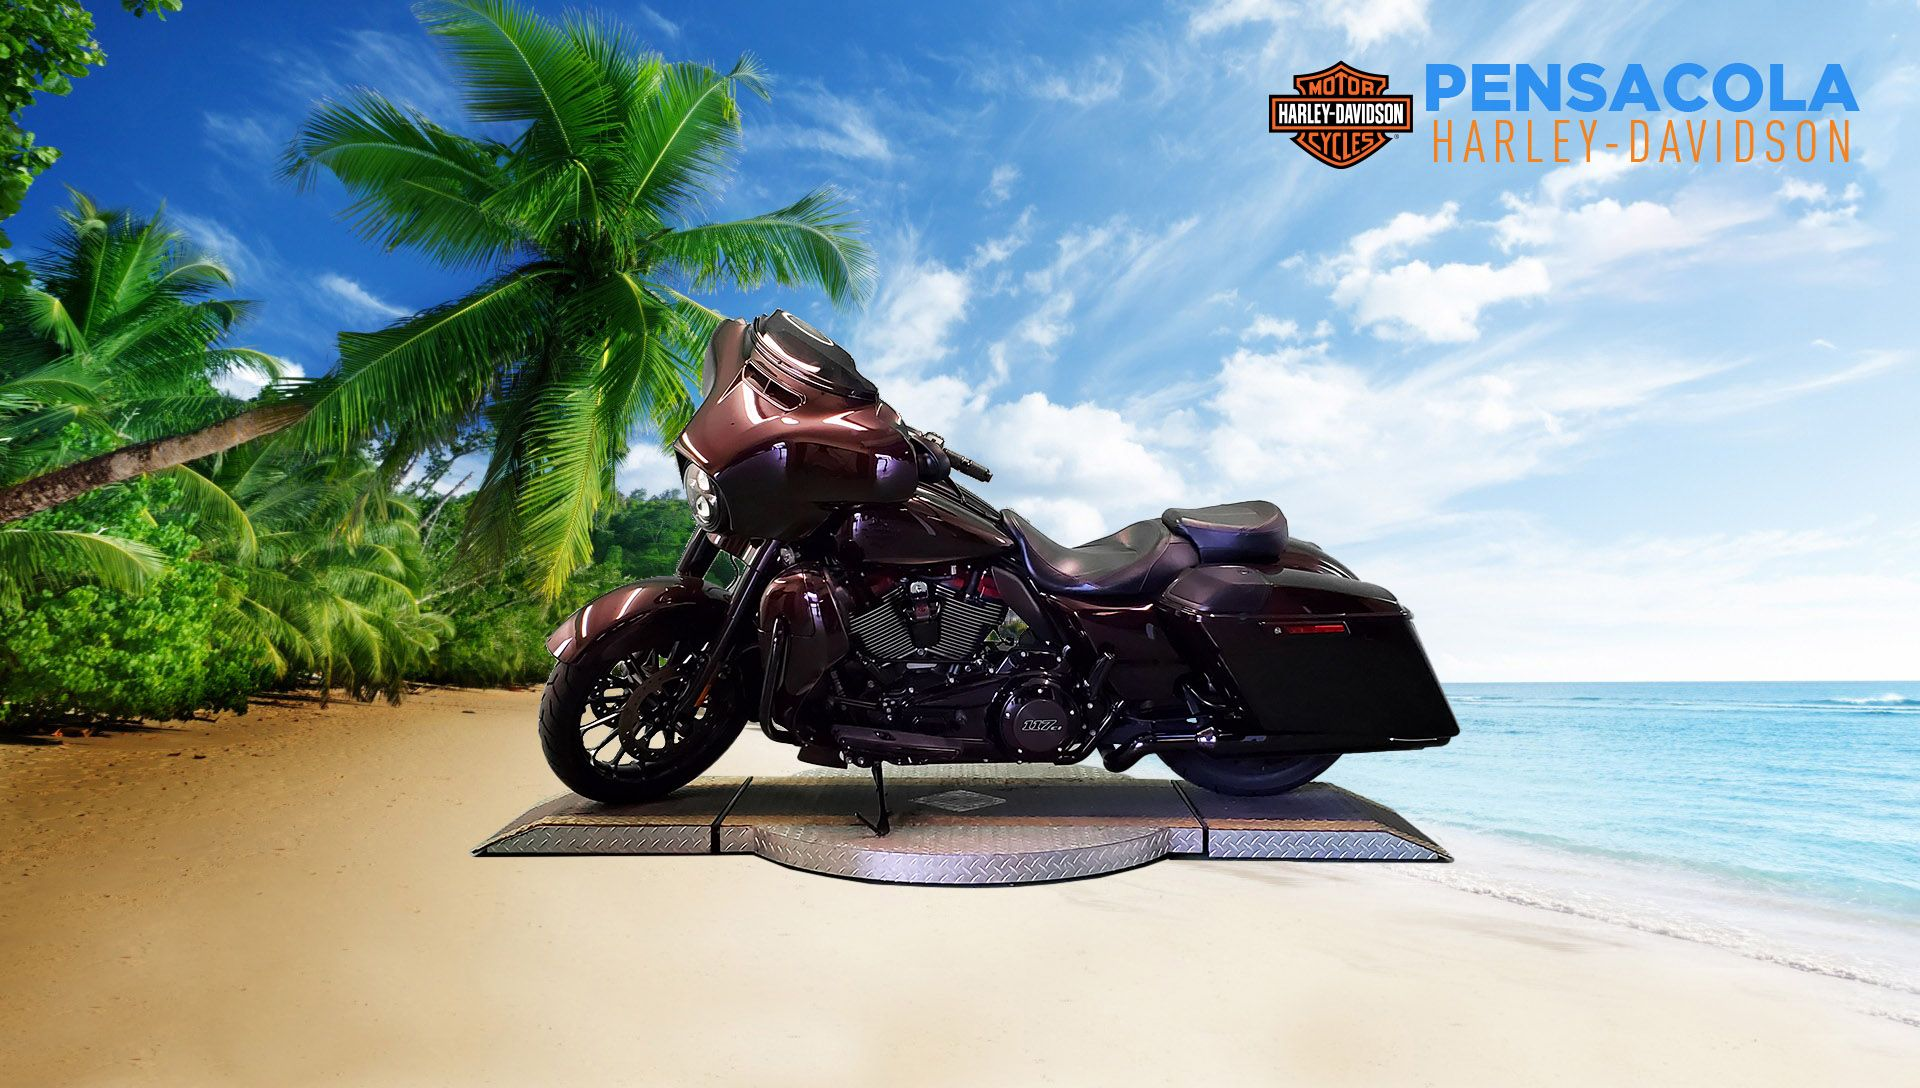 Certified Pre-Owned 2019 Harley-Davidson CVO Street Glide FLHXSE